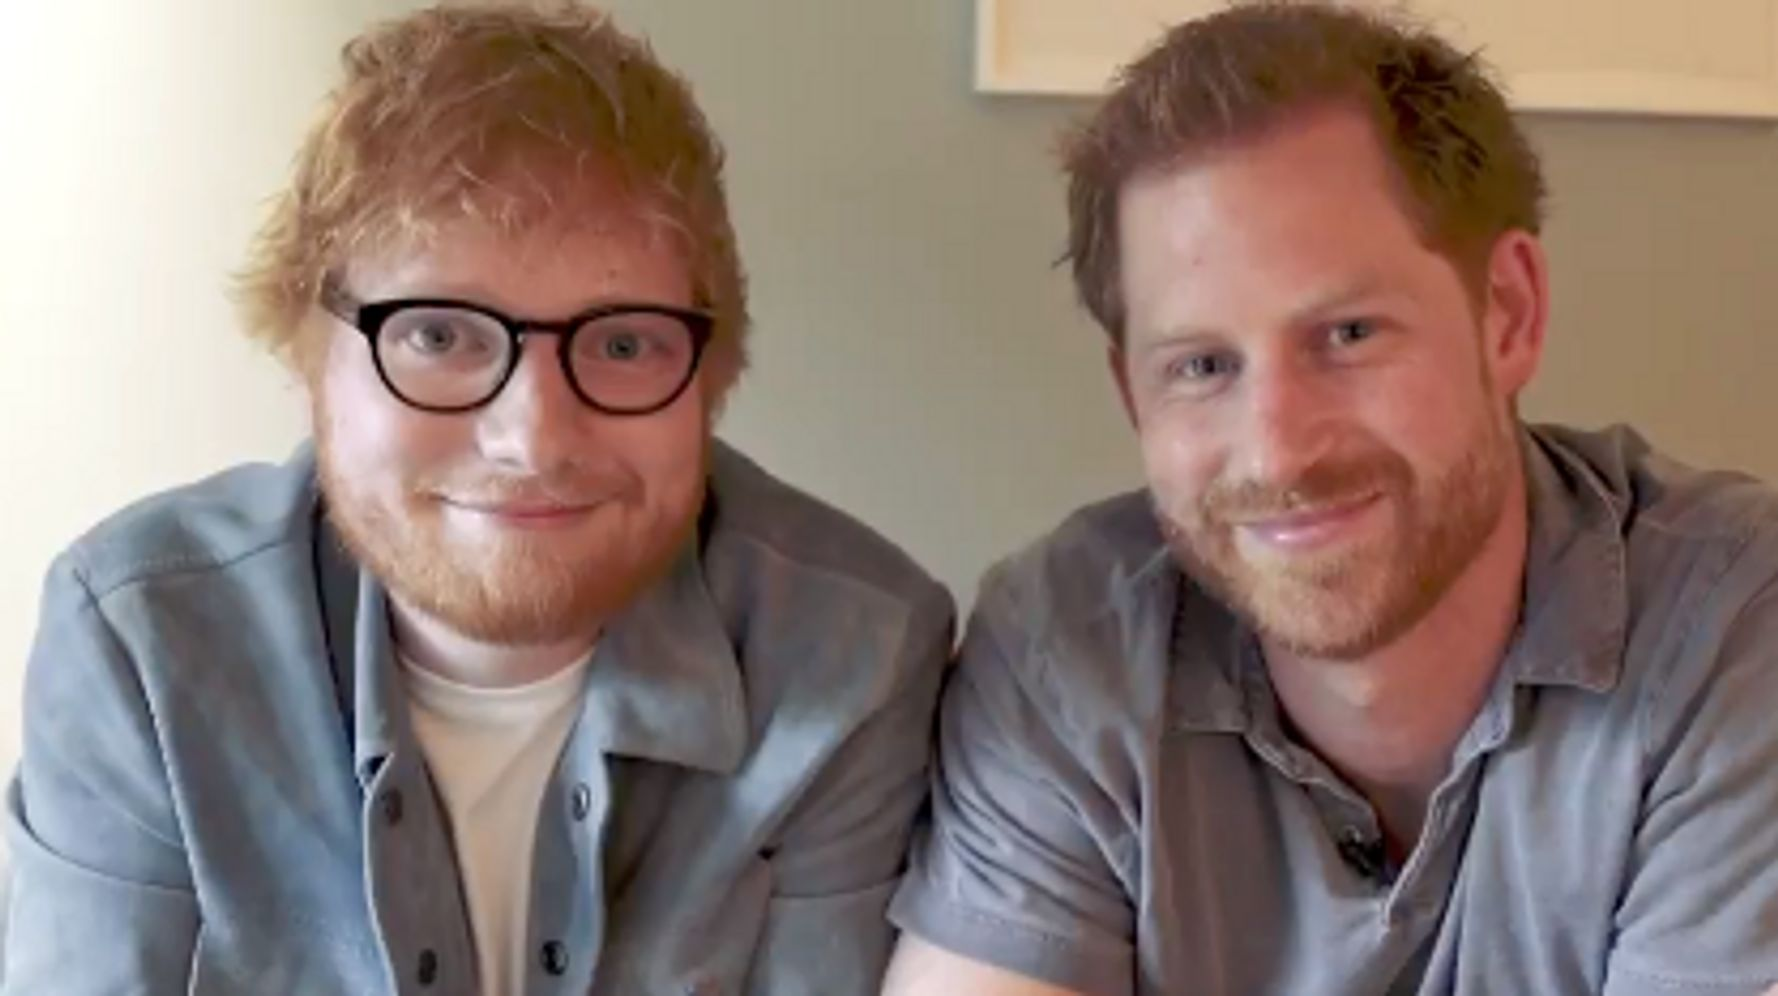 Westlake Legal Group 5d9f184220000058074ff372 Prince Harry And Ed Sheeran's Spoof Video Is Royally Hilarious